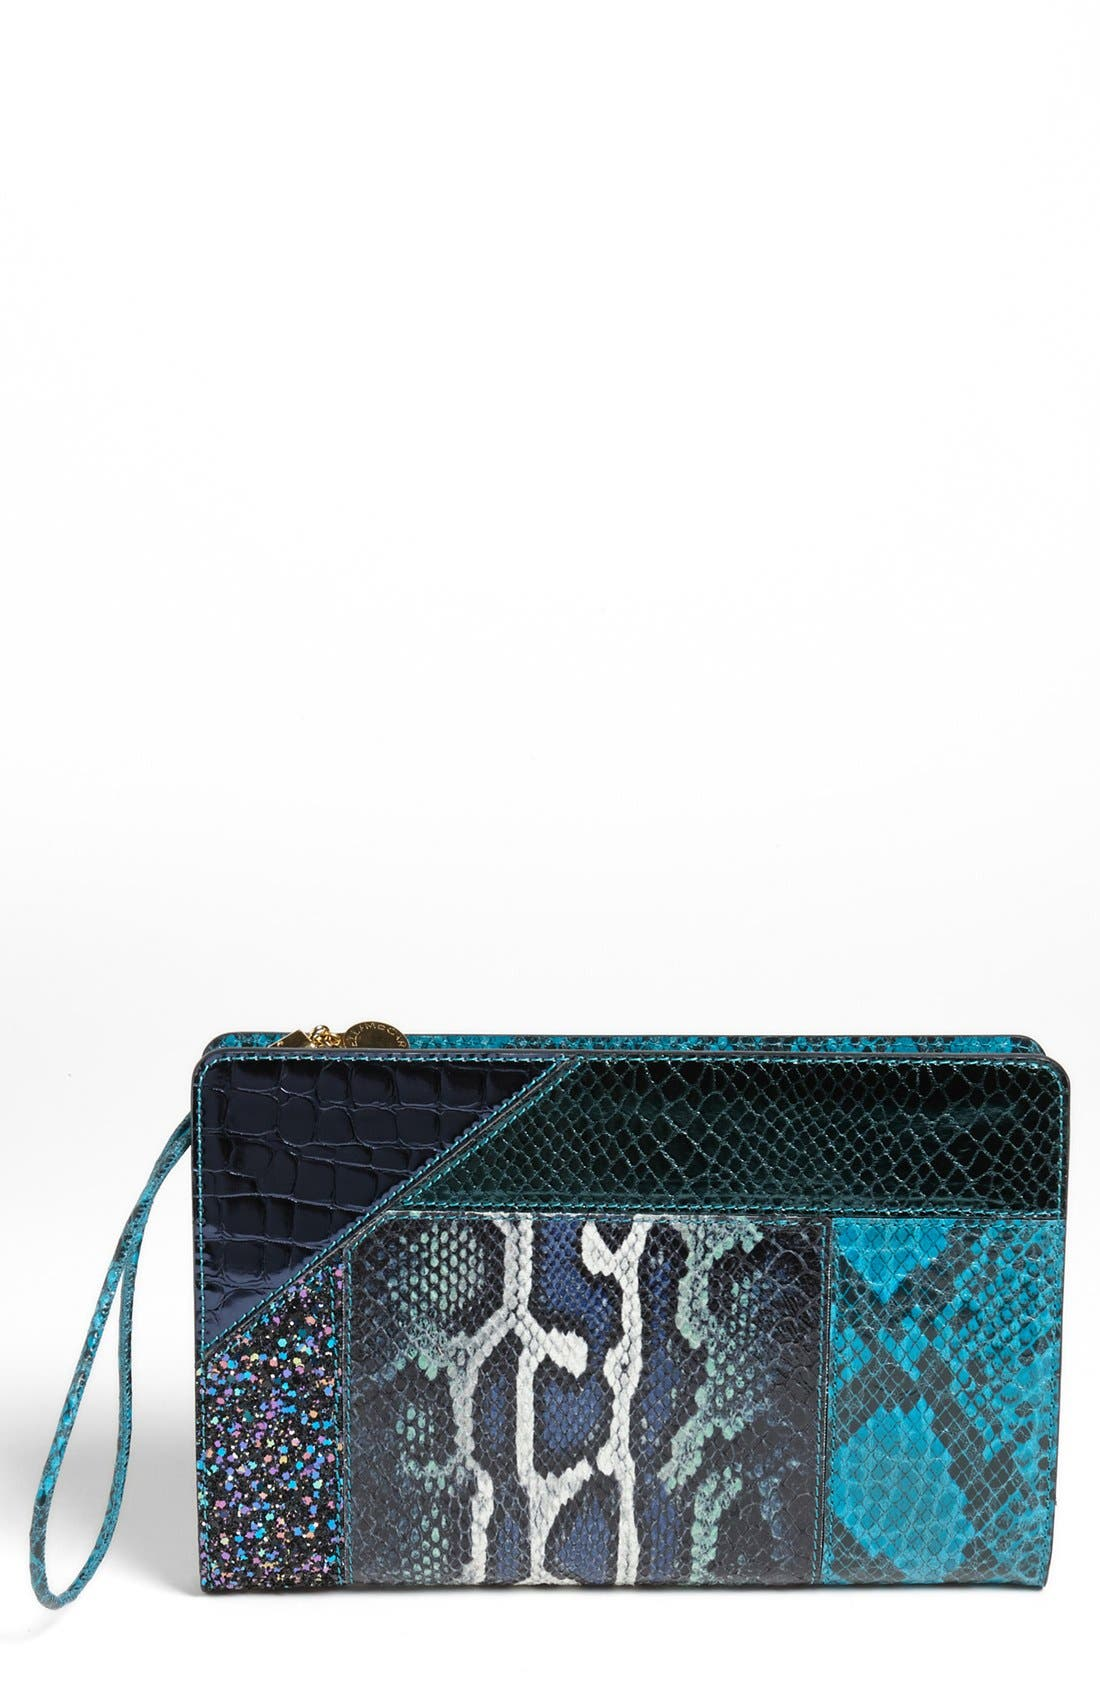 Alternate Image 1 Selected - Stella McCartney 'Patchwork' Clutch